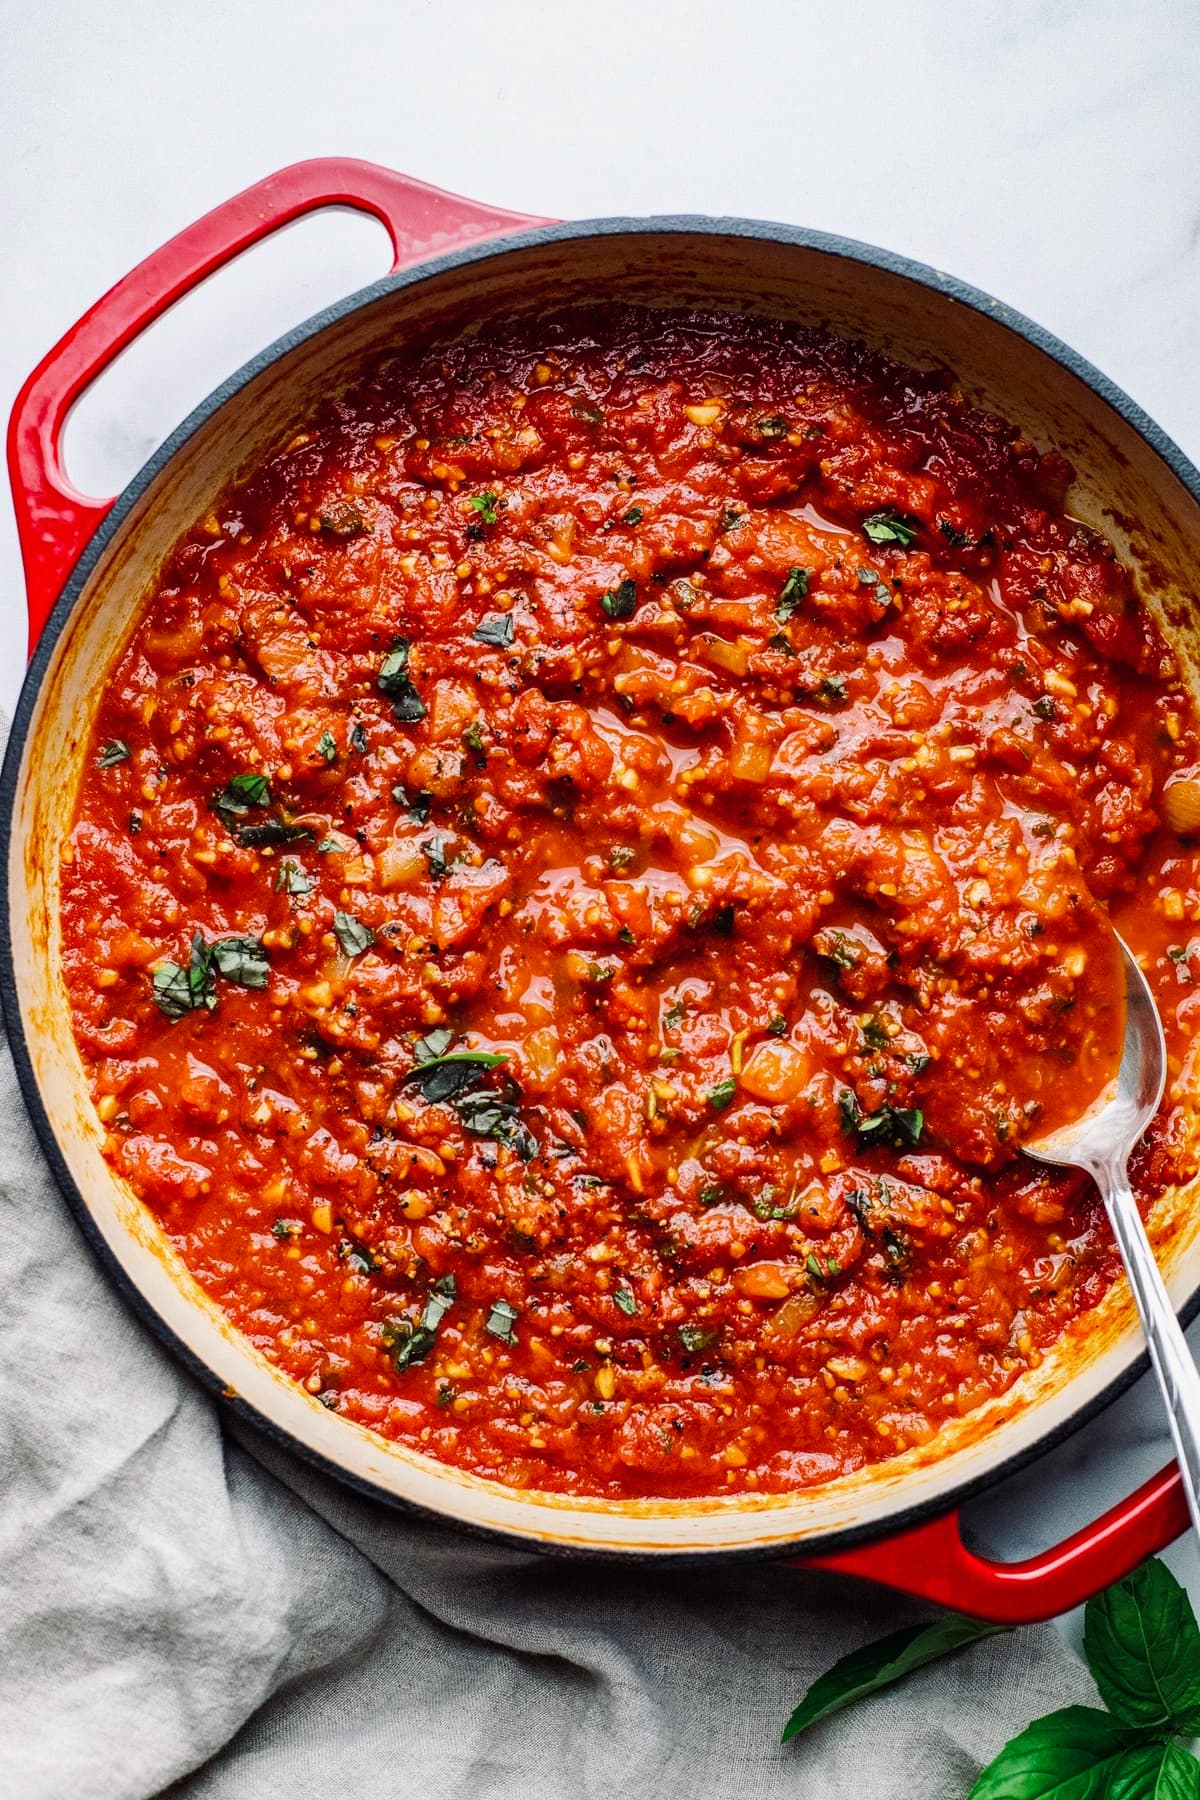 red pan on white background with fresh tomato sauce in it.